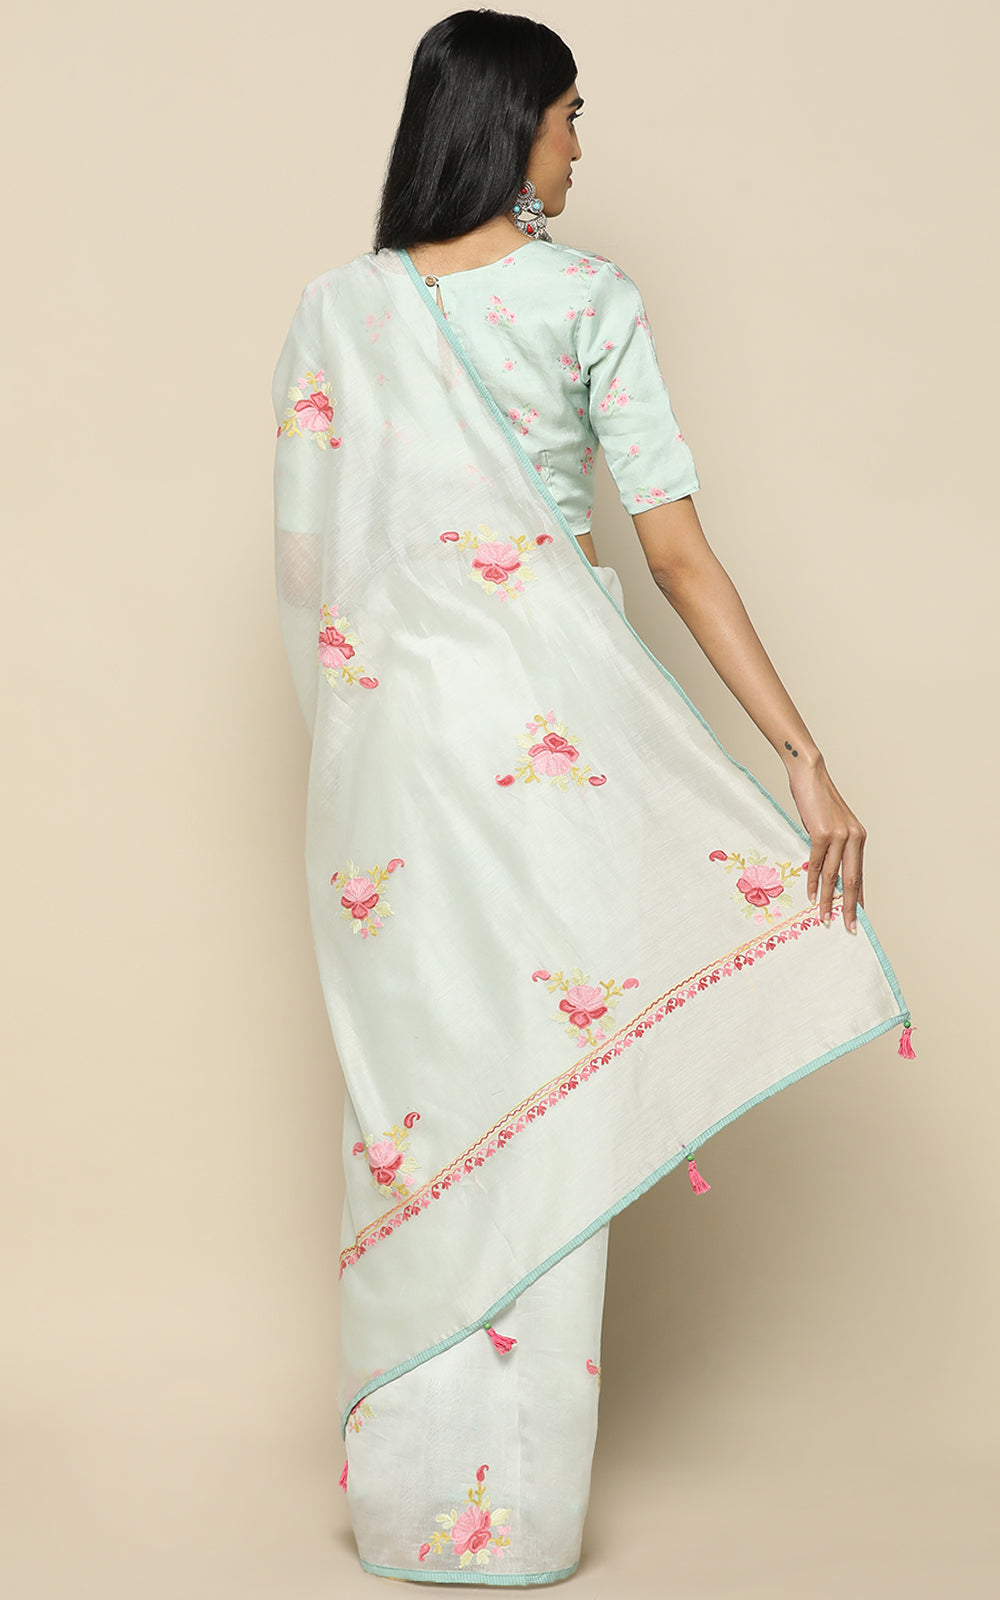 POWDER BLUE CHANDERI SILK SAREE WITH KASHMIRI HAND EMBROIDERY